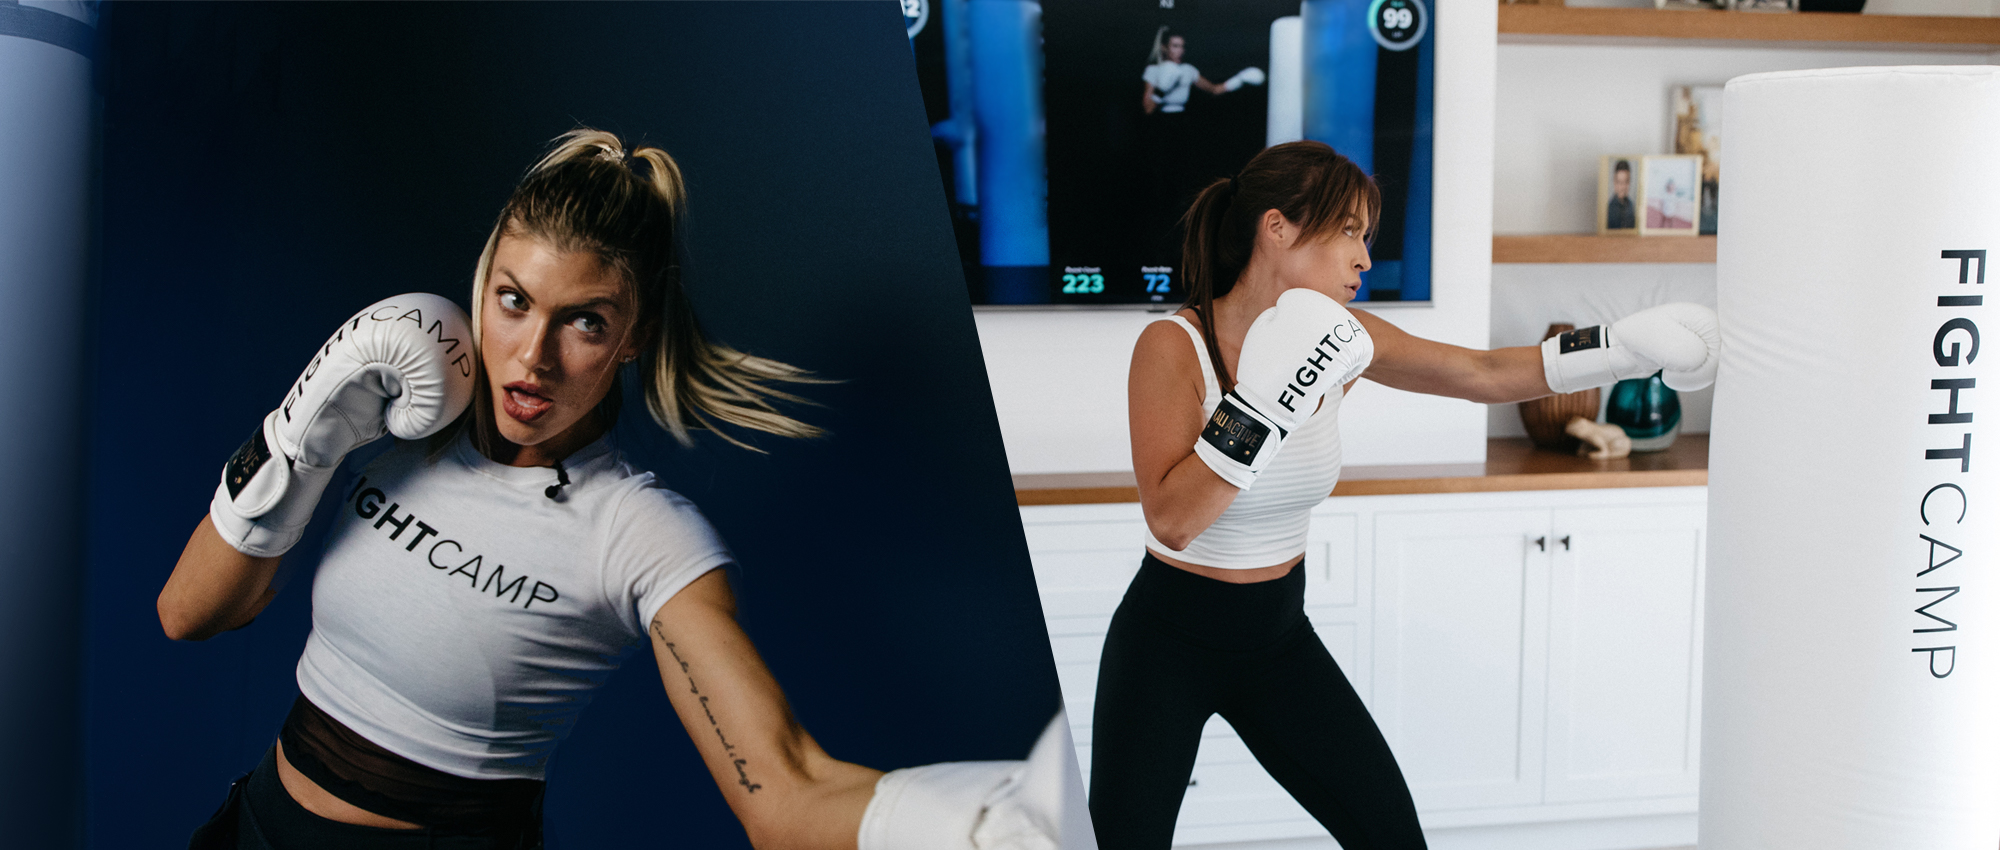 FightCamp | Interactive At-Home Boxing Workouts & Equipment